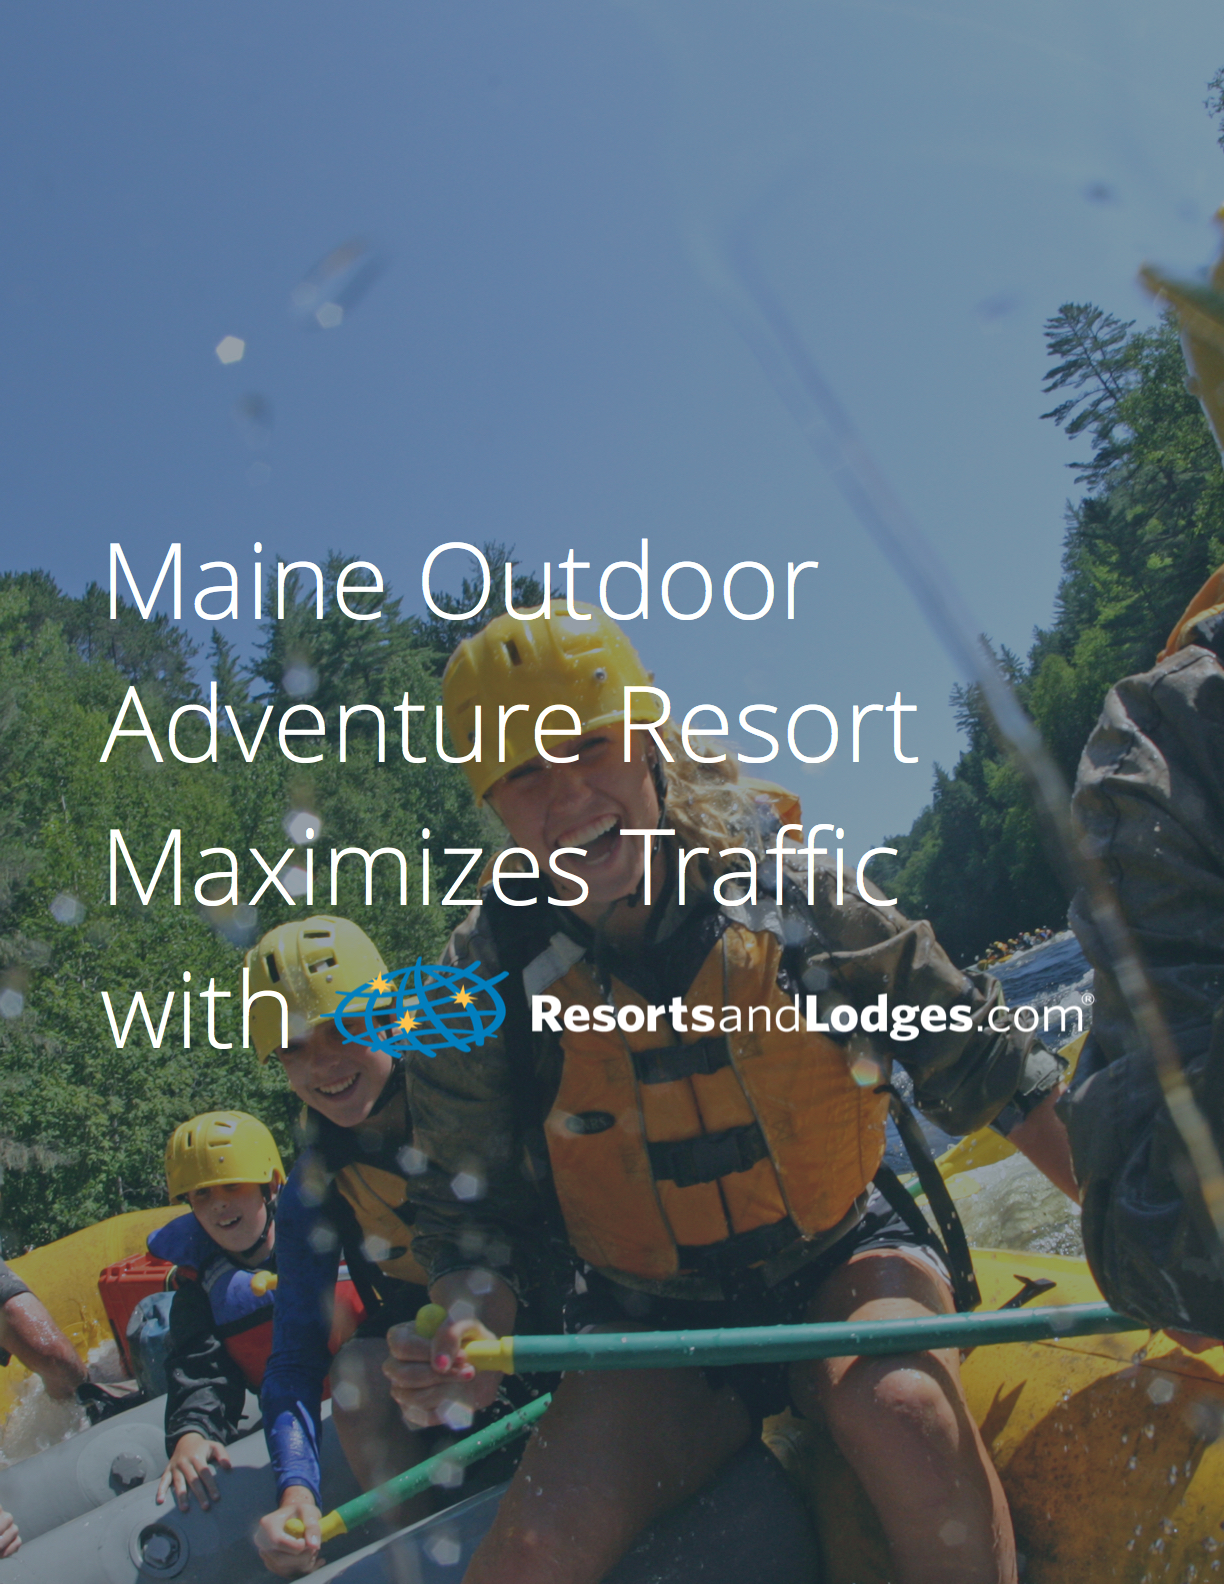 Maine Northern Outdoors Case Study